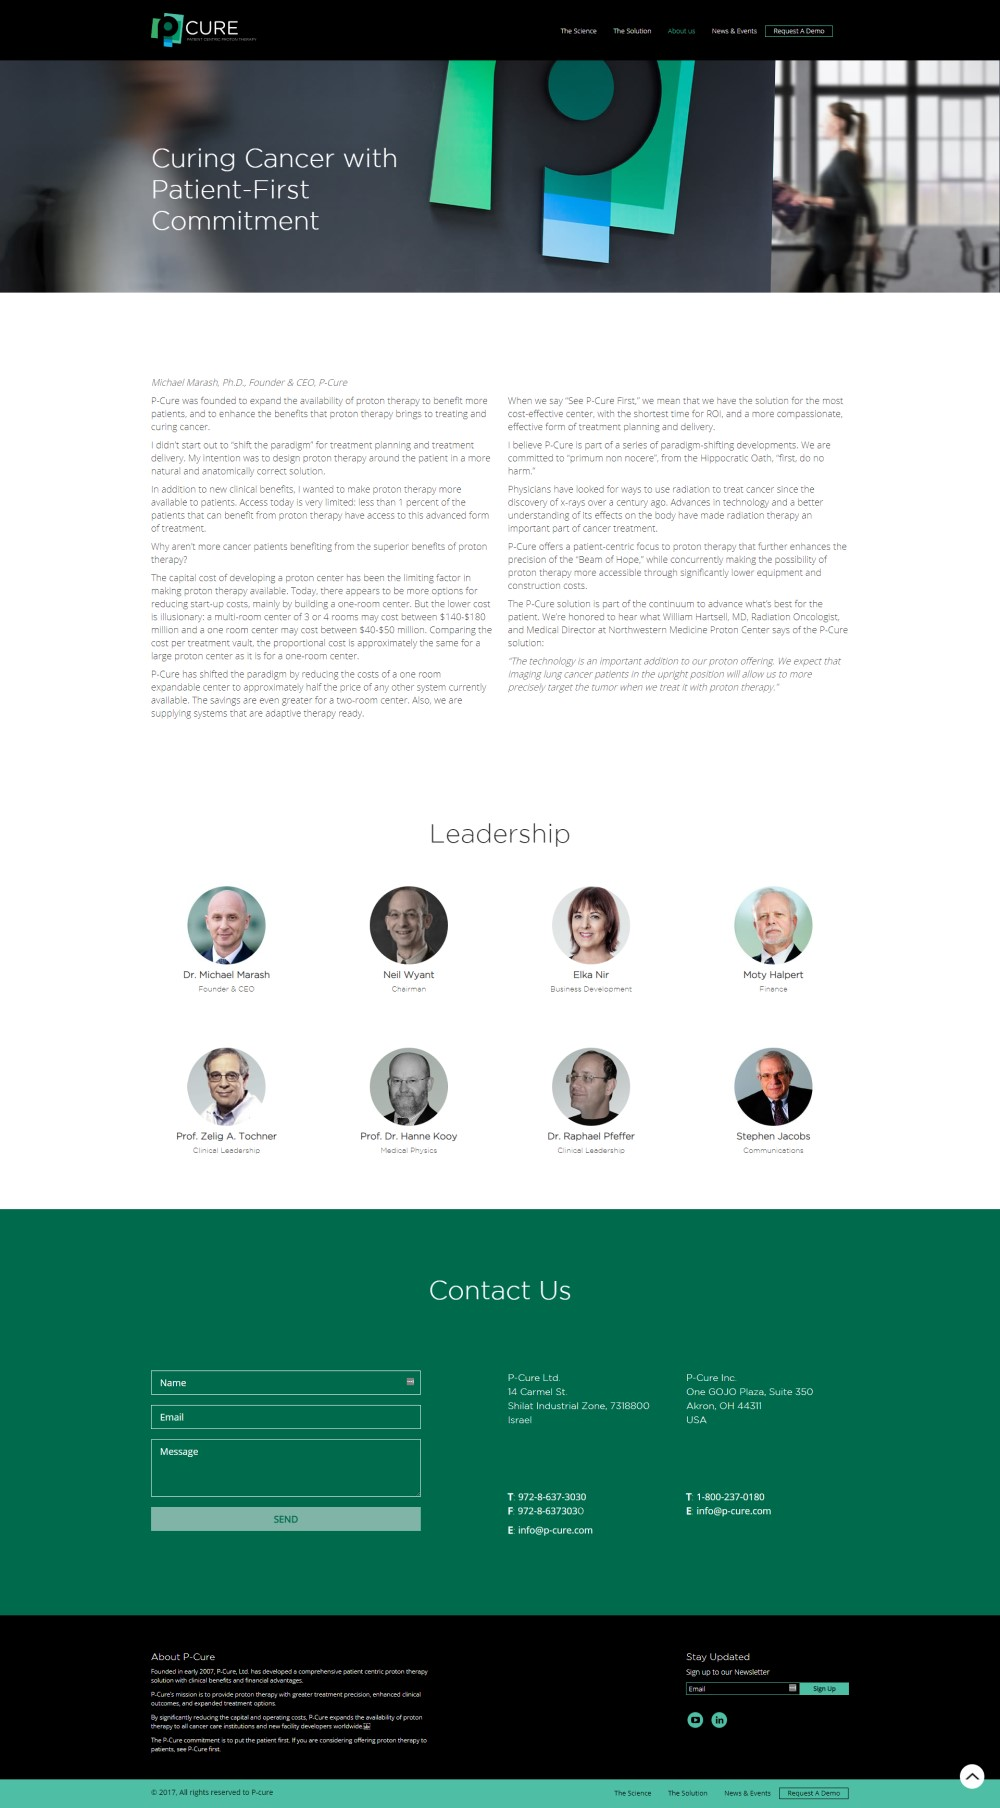 pcure about full page